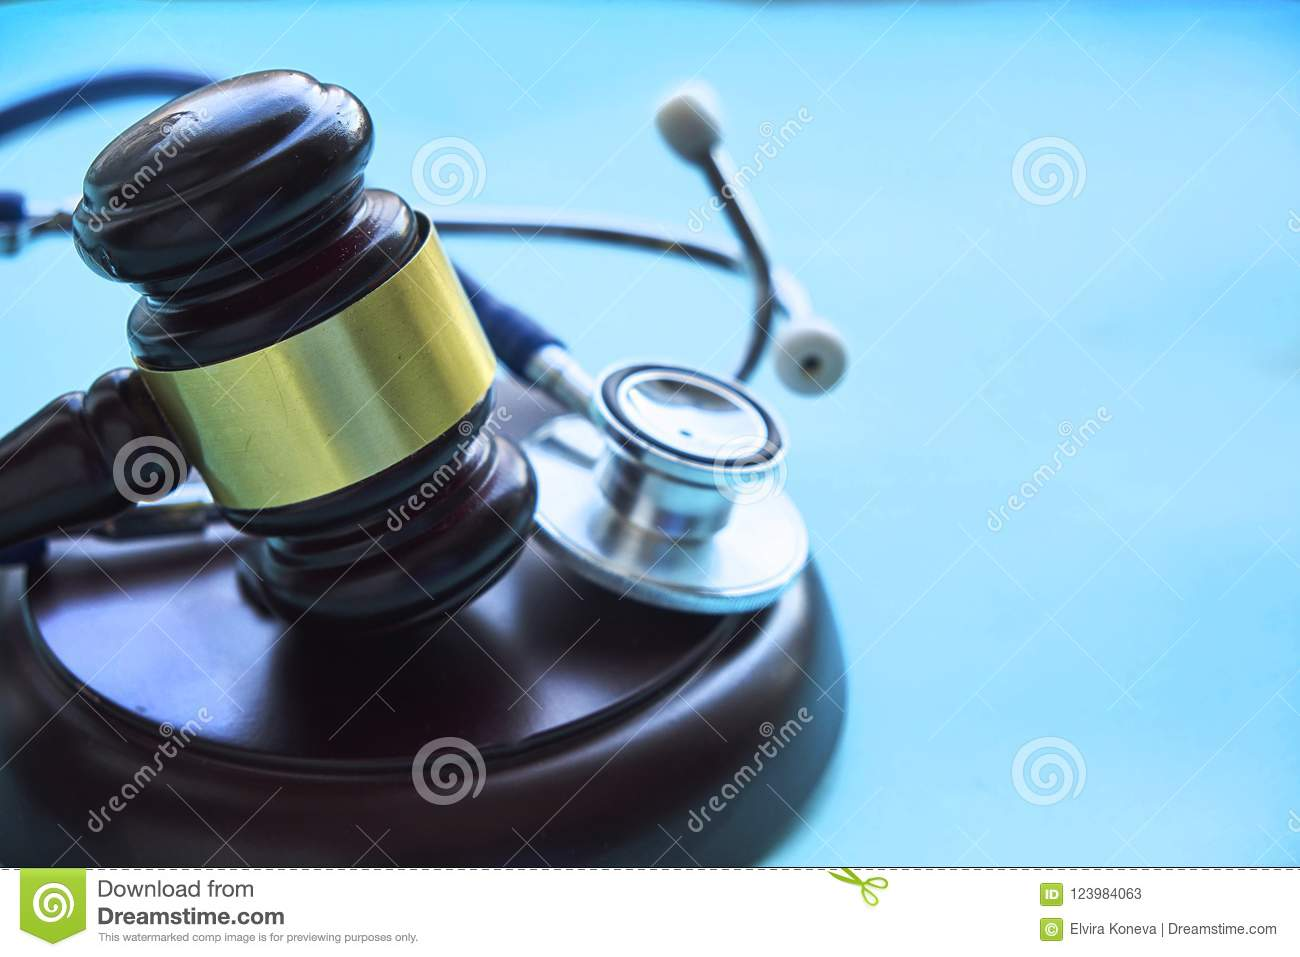 Gavel and stethoscope. medical jurisprudence. legal definition of medical malpractice. attorney. common errors doctors